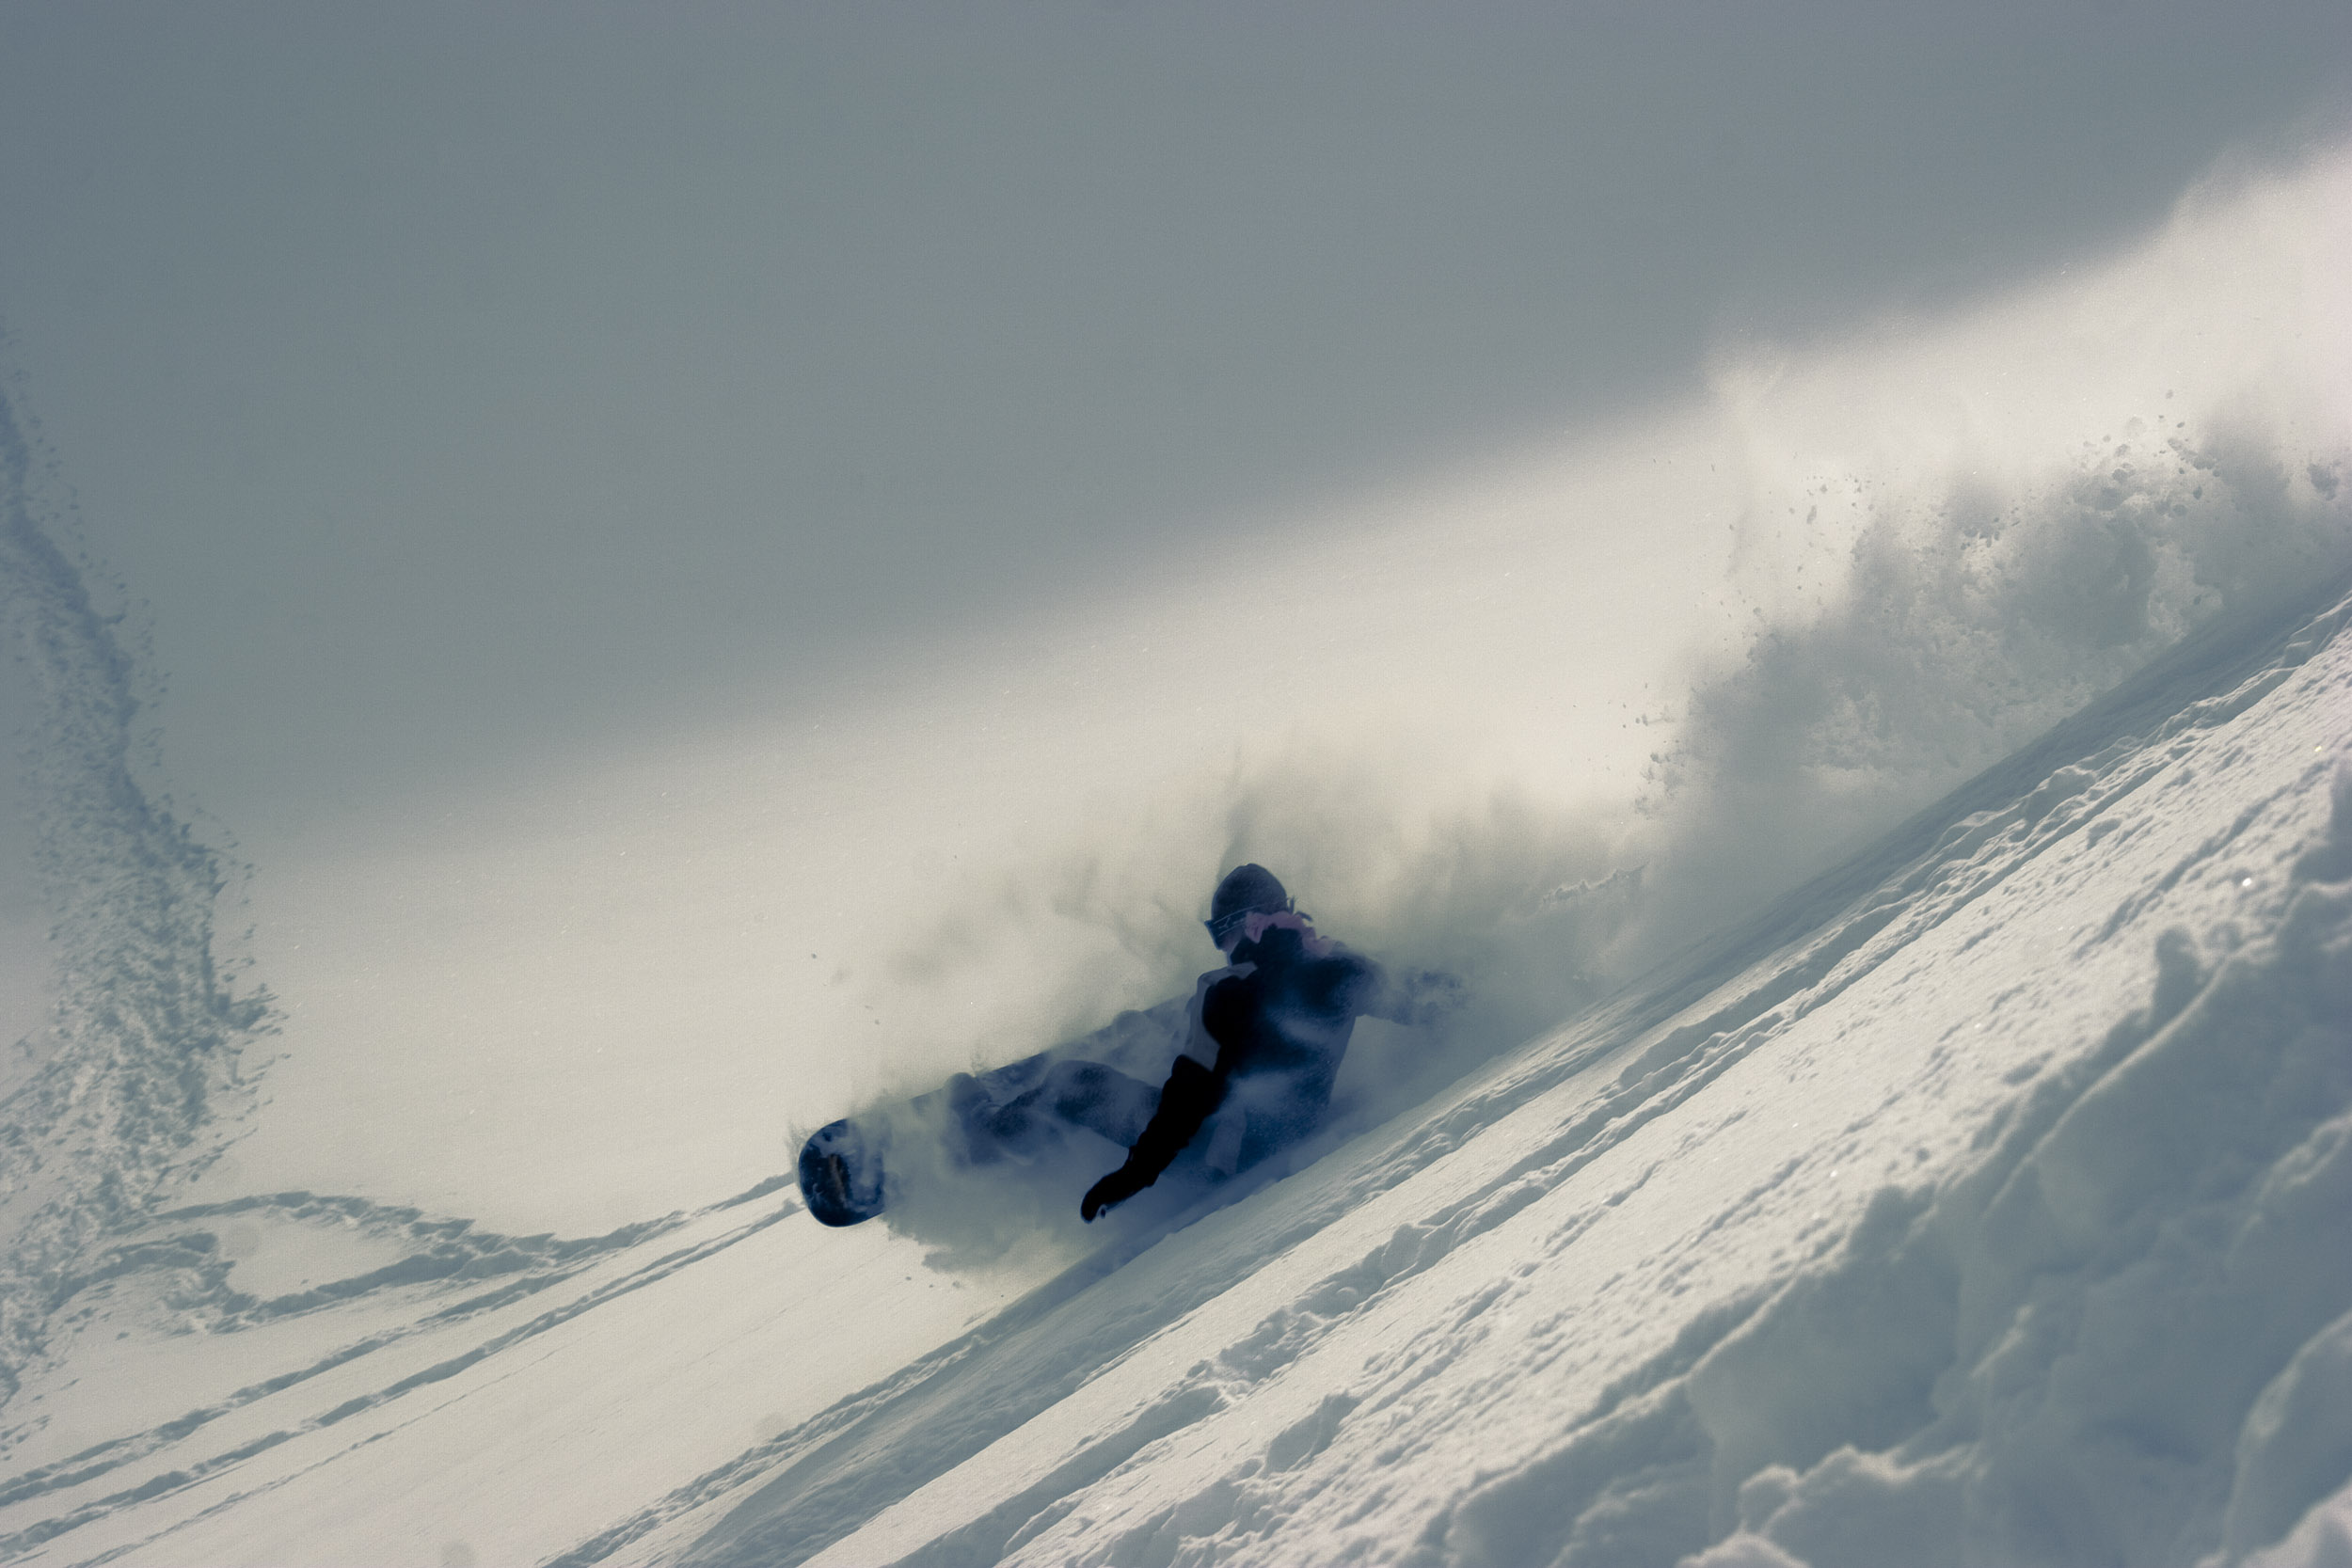 extreme snowboarding wallpapers - photo #15